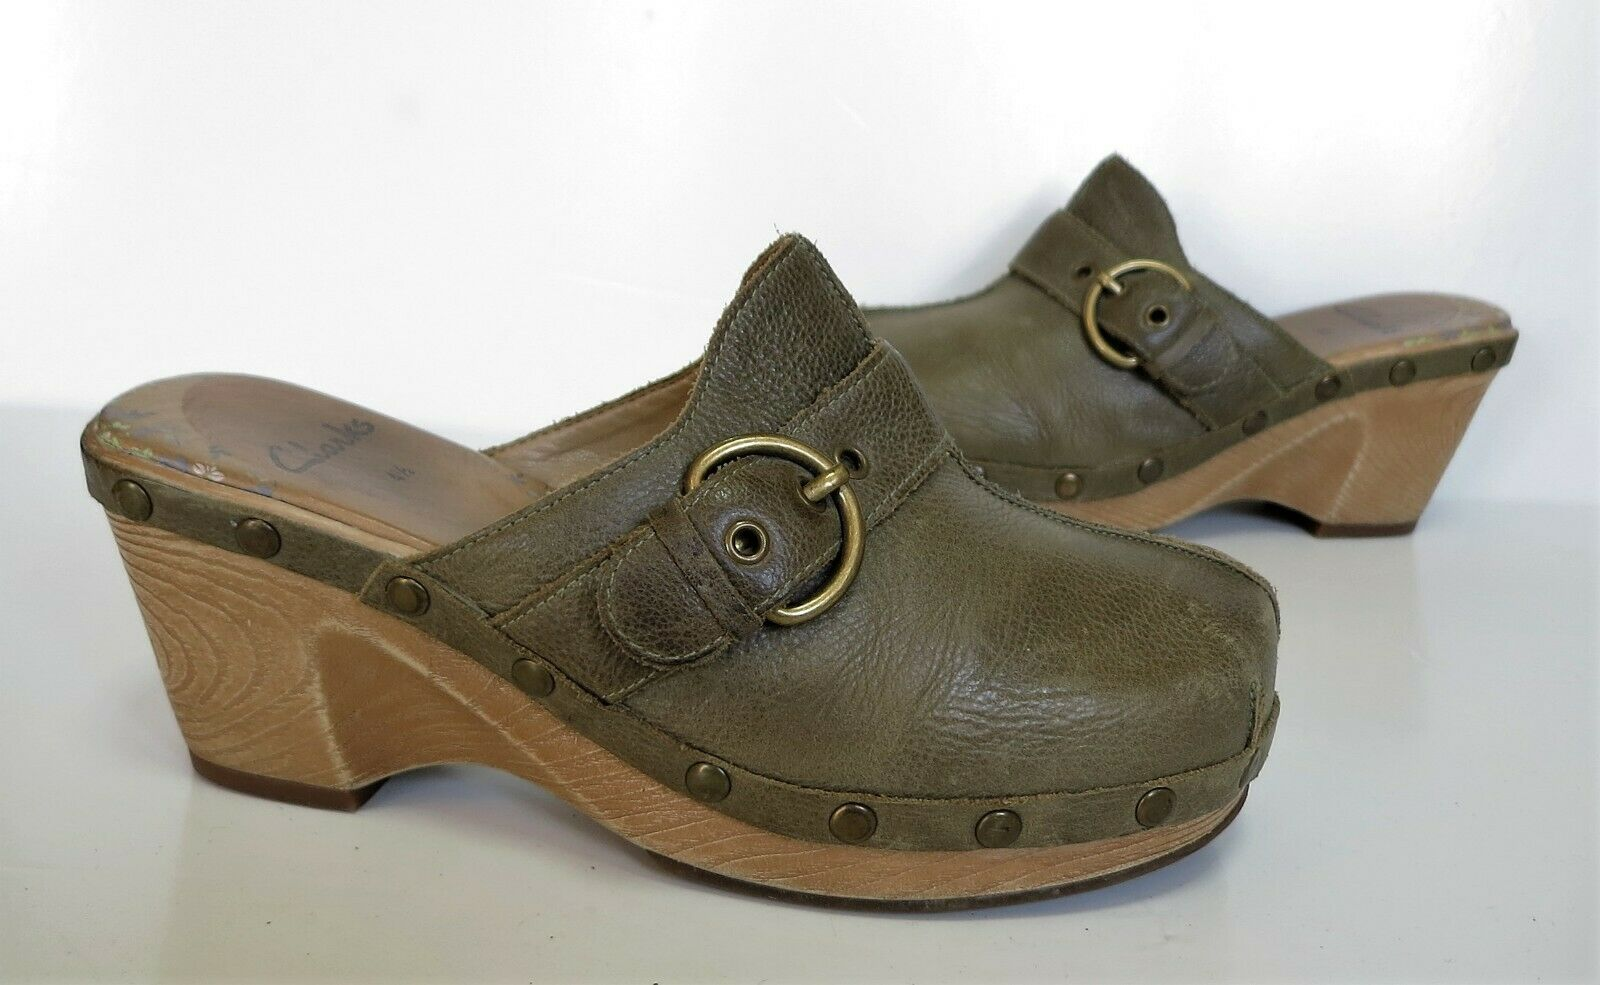 f5247f0c9f5 Ladies CLARKS Green Leather Wedge shoes Mules Size 4.5 Exc Con Clogs High  ntnpuw4434-Women s Sandals